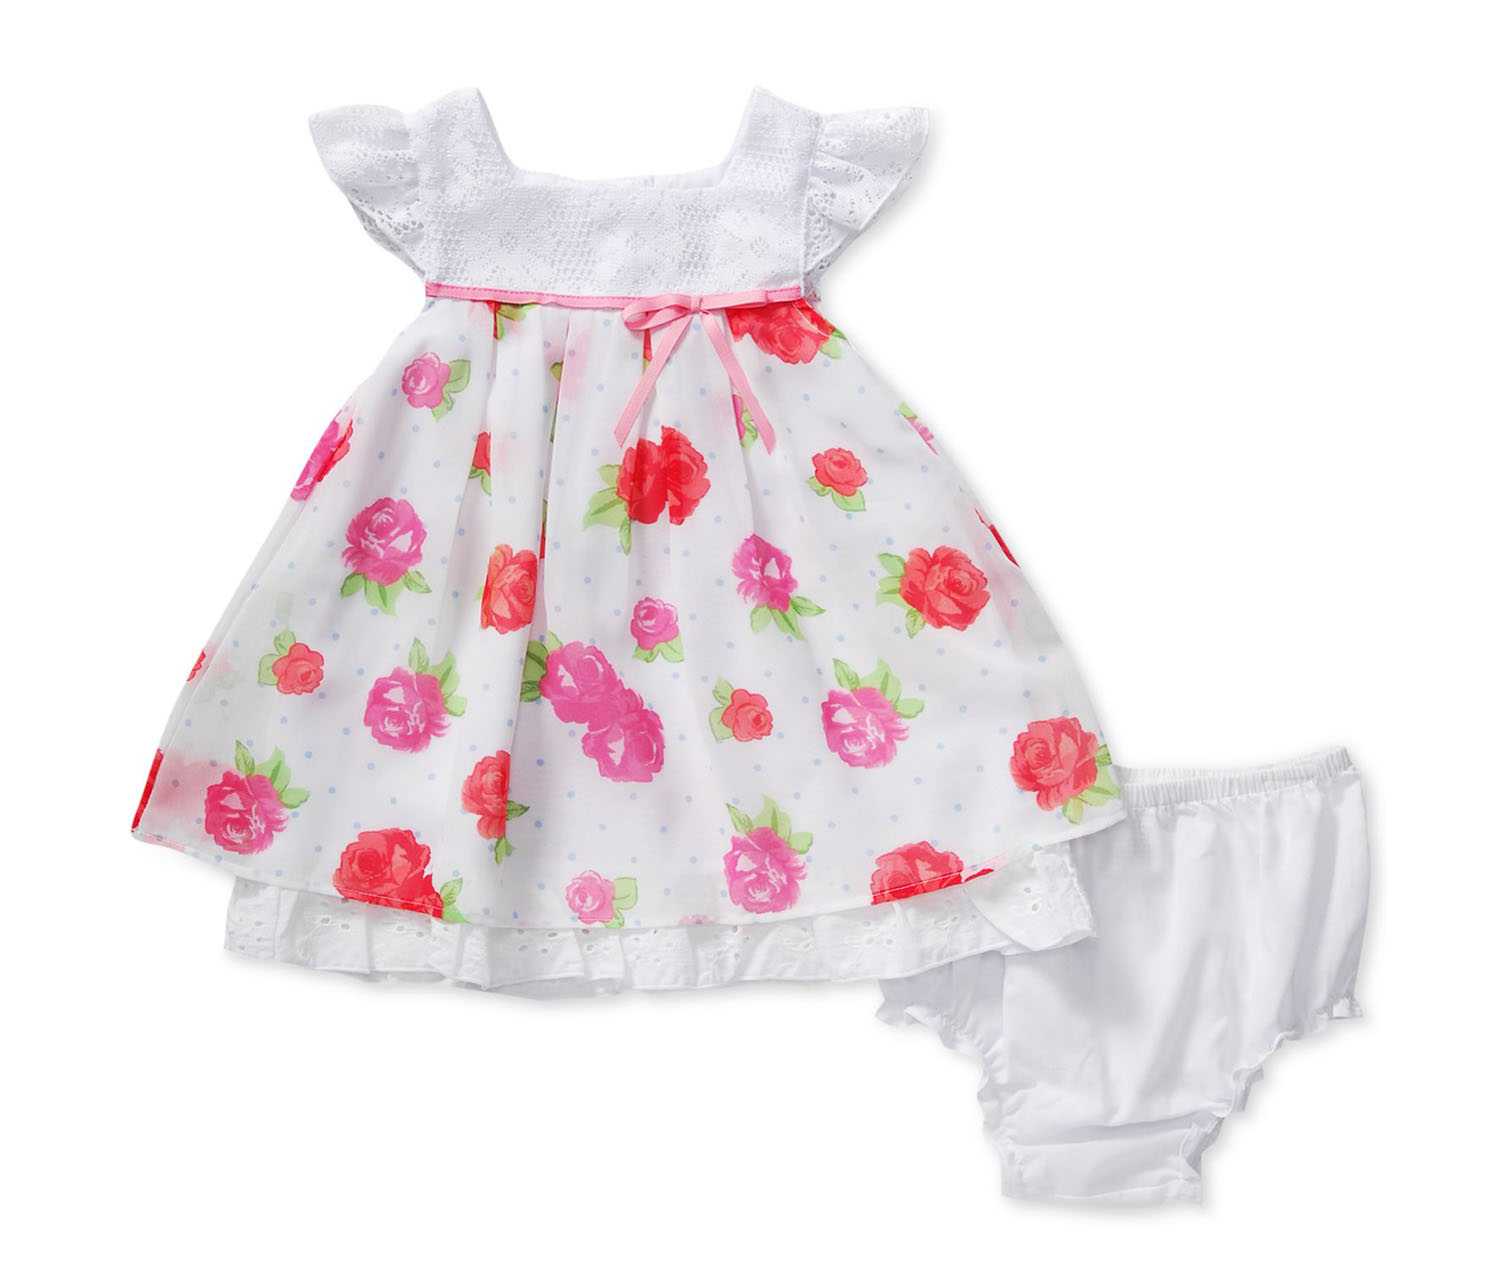 Sweet Heart Rose Baby Girls' Floral Eyelet Dress & Diaper Cover, White